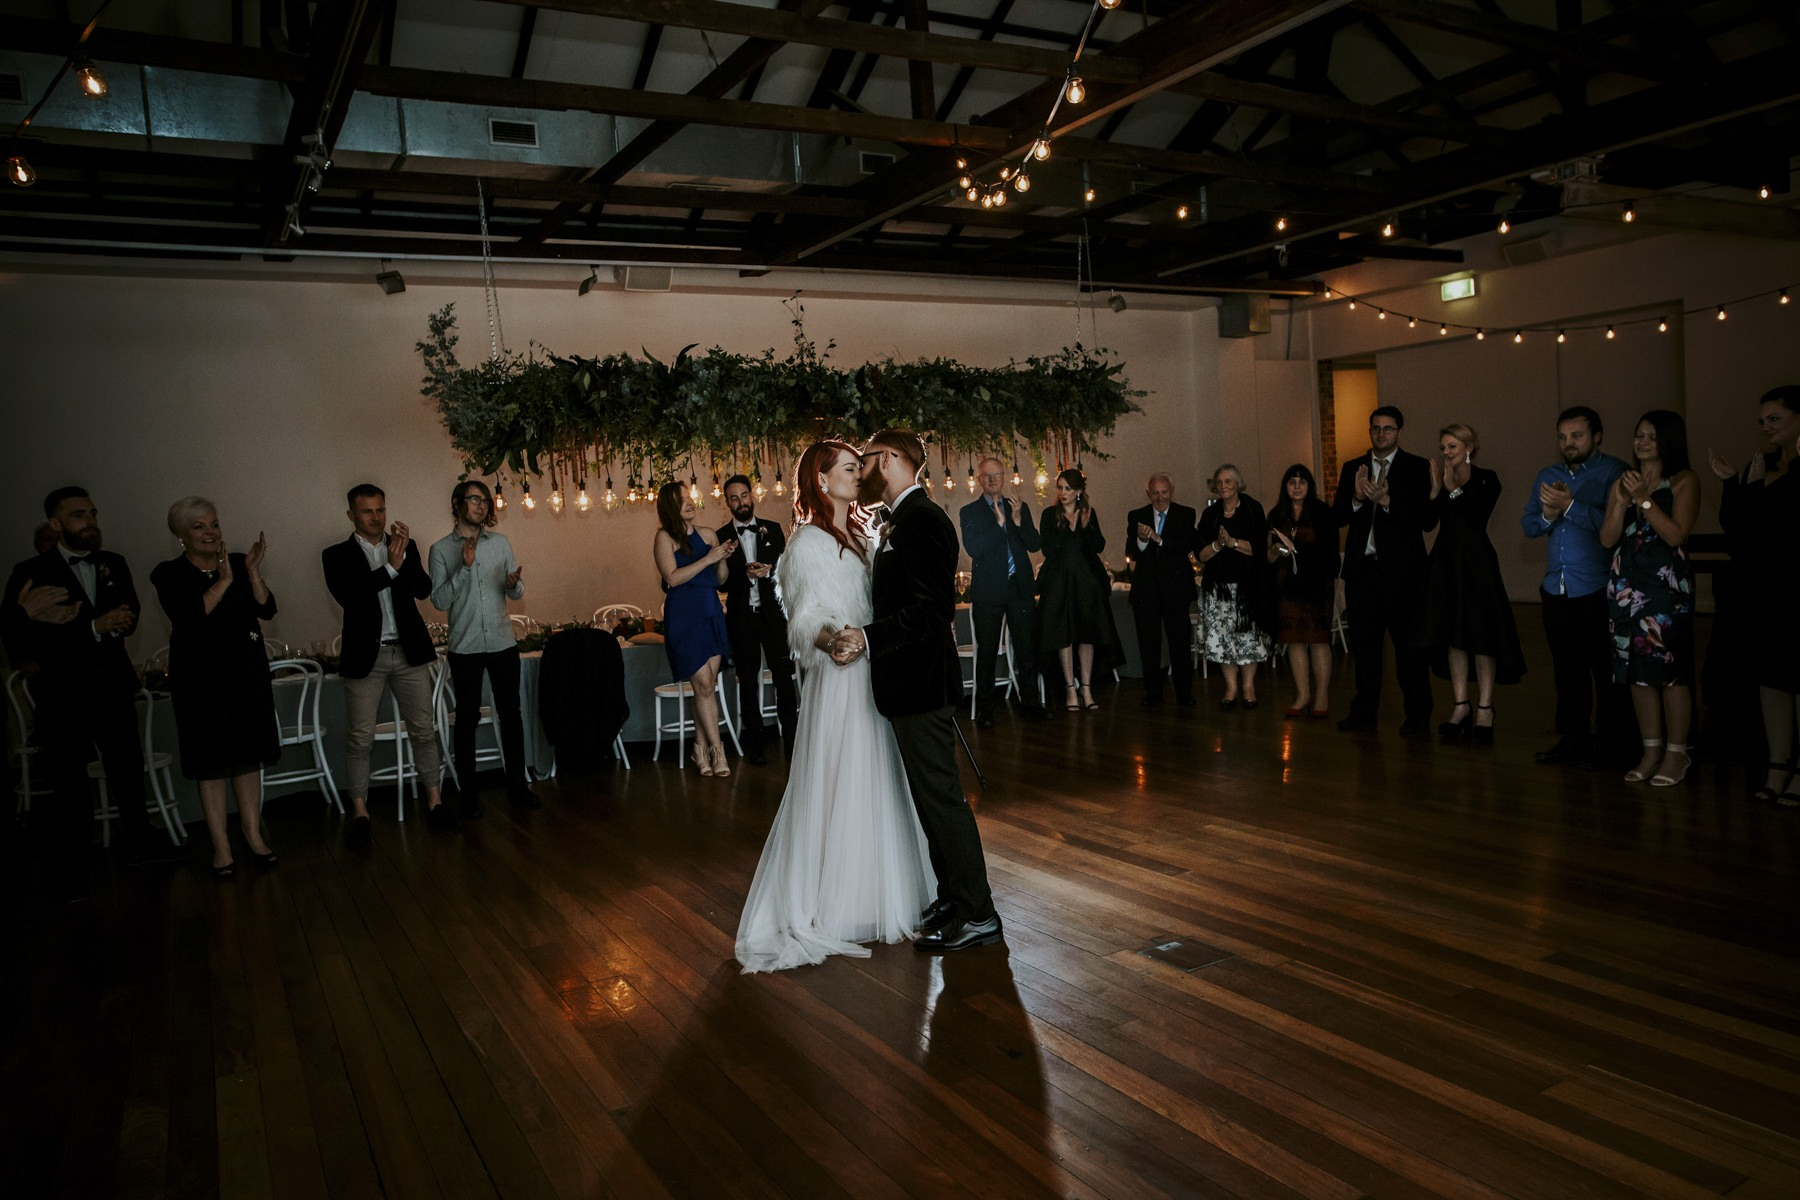 flour-factory-wedding_perth-city-wedding-216